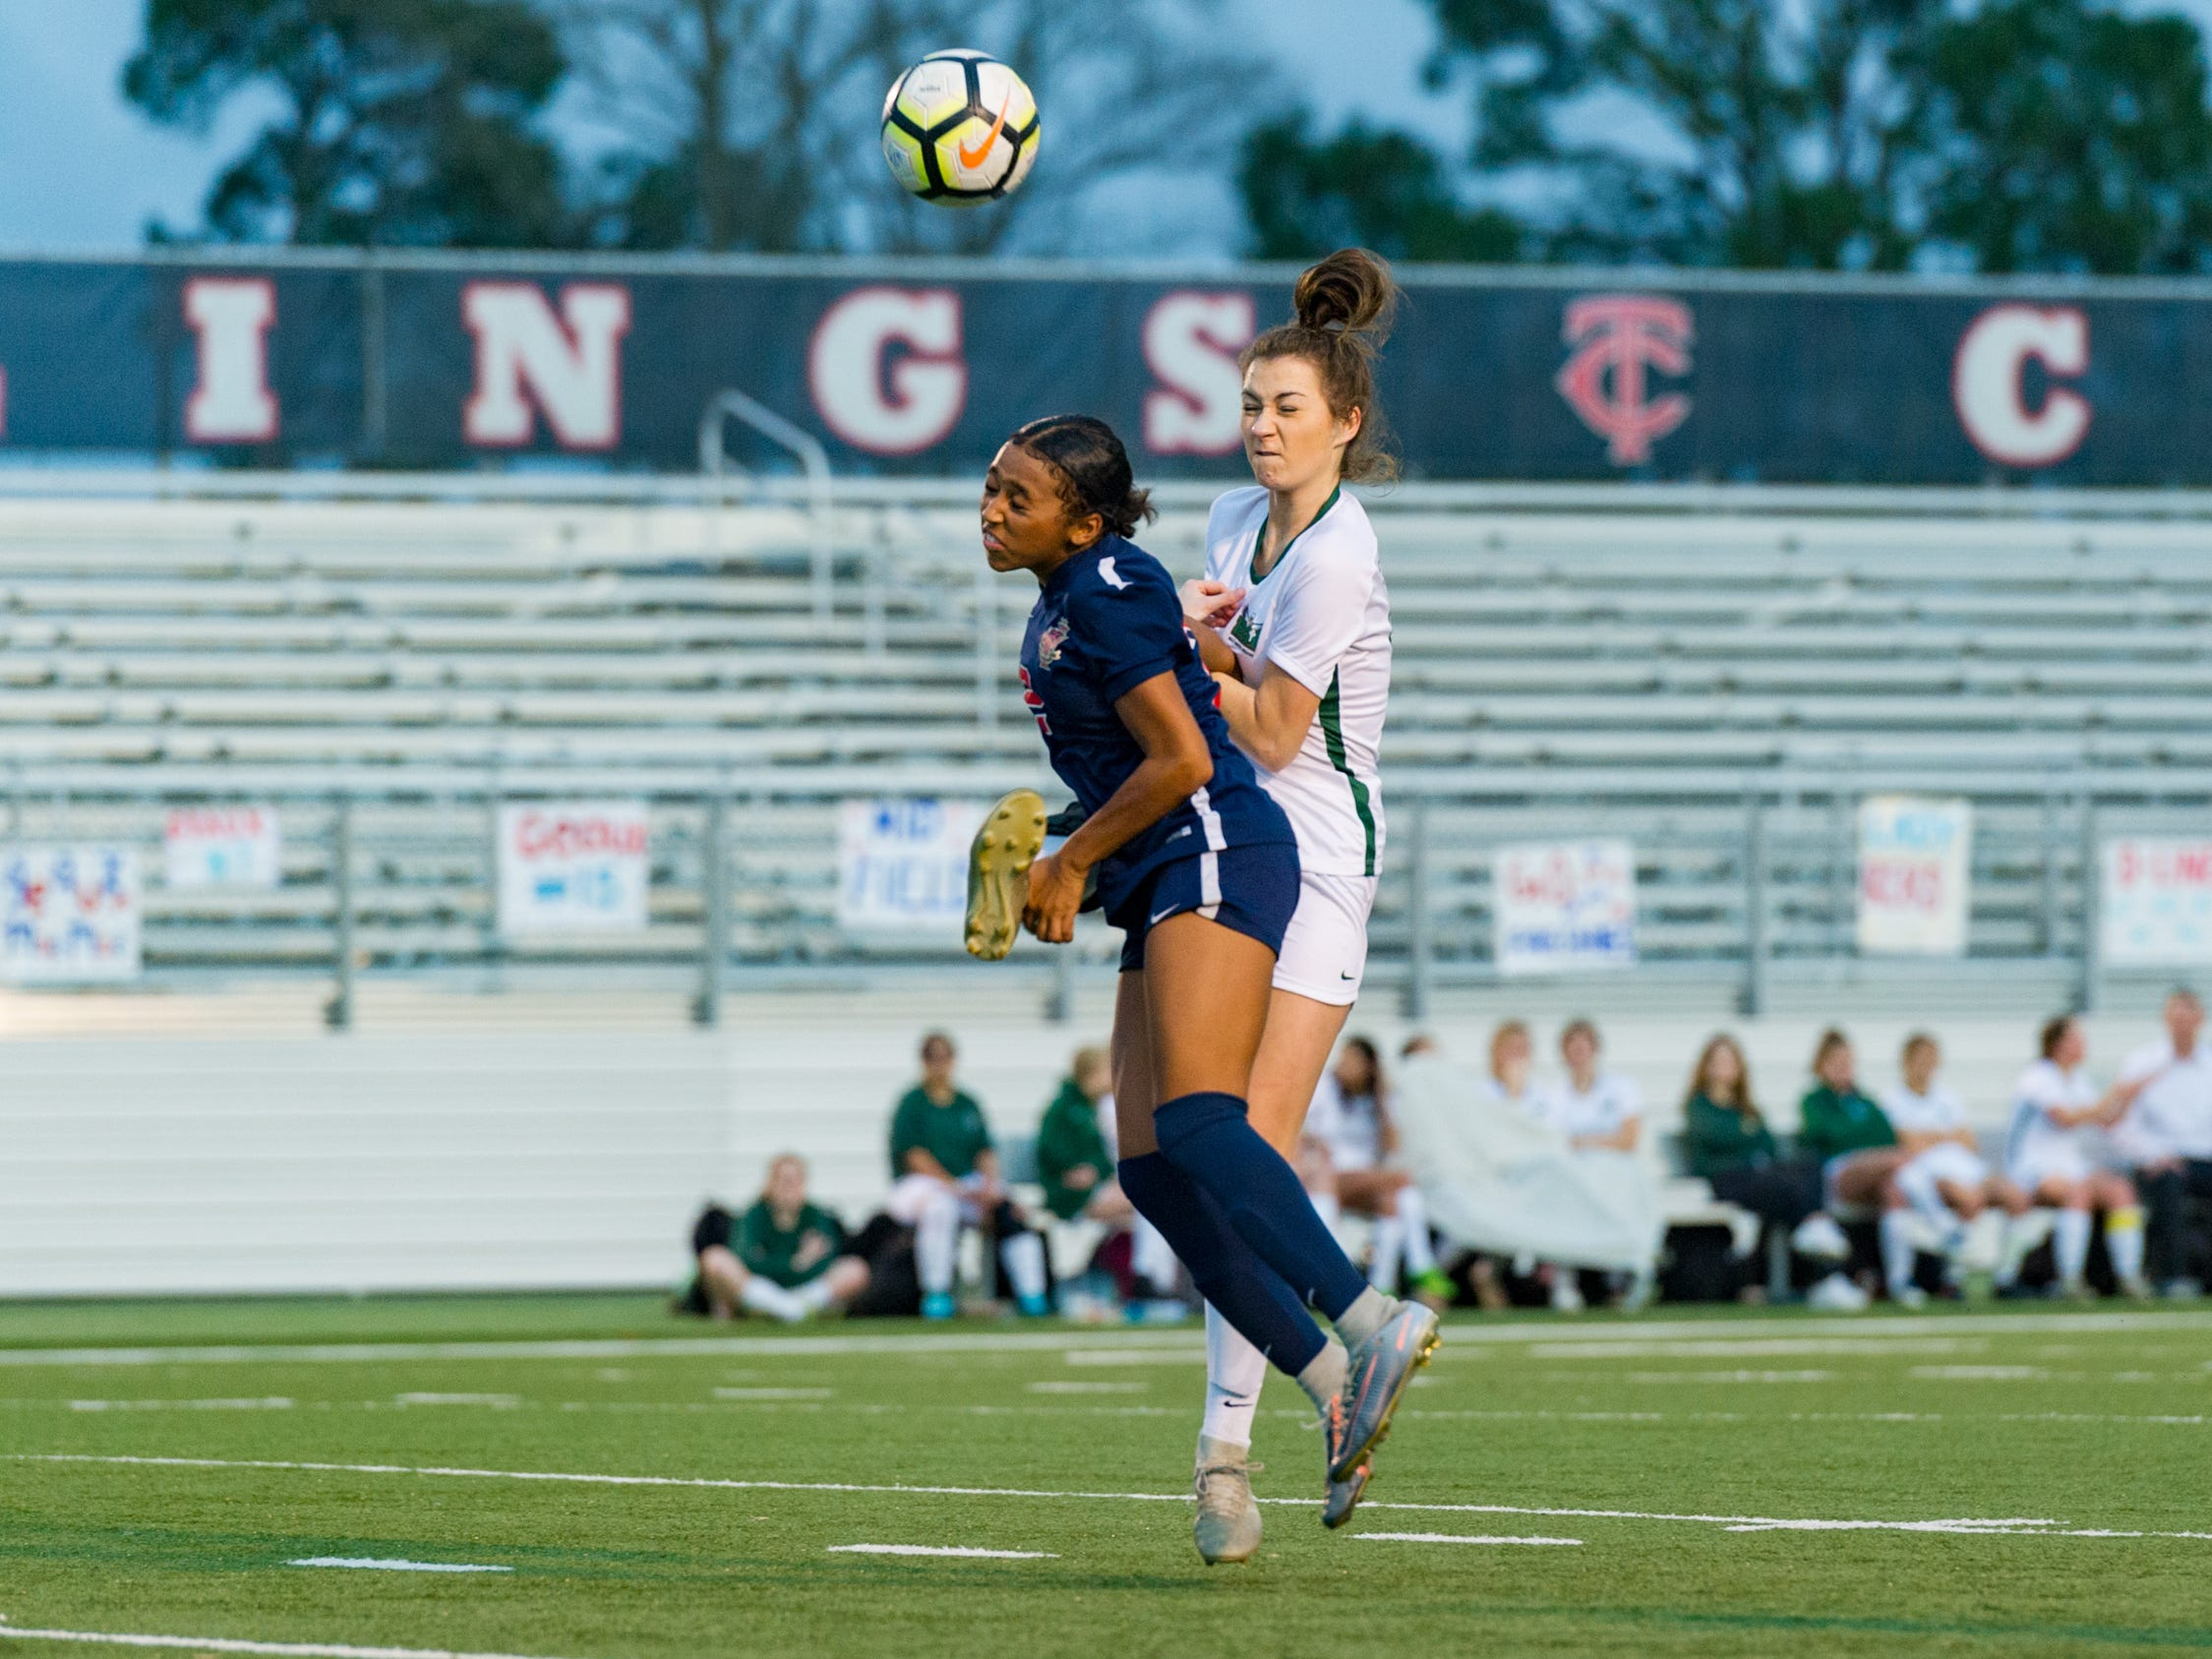 Camryn Chretien header as Teurlings Catholic girls soccer takes down Holy Savior Menard in the quarterfinals of the LHSAA soccer playoffs. Monday, Feb. 11, 2019.